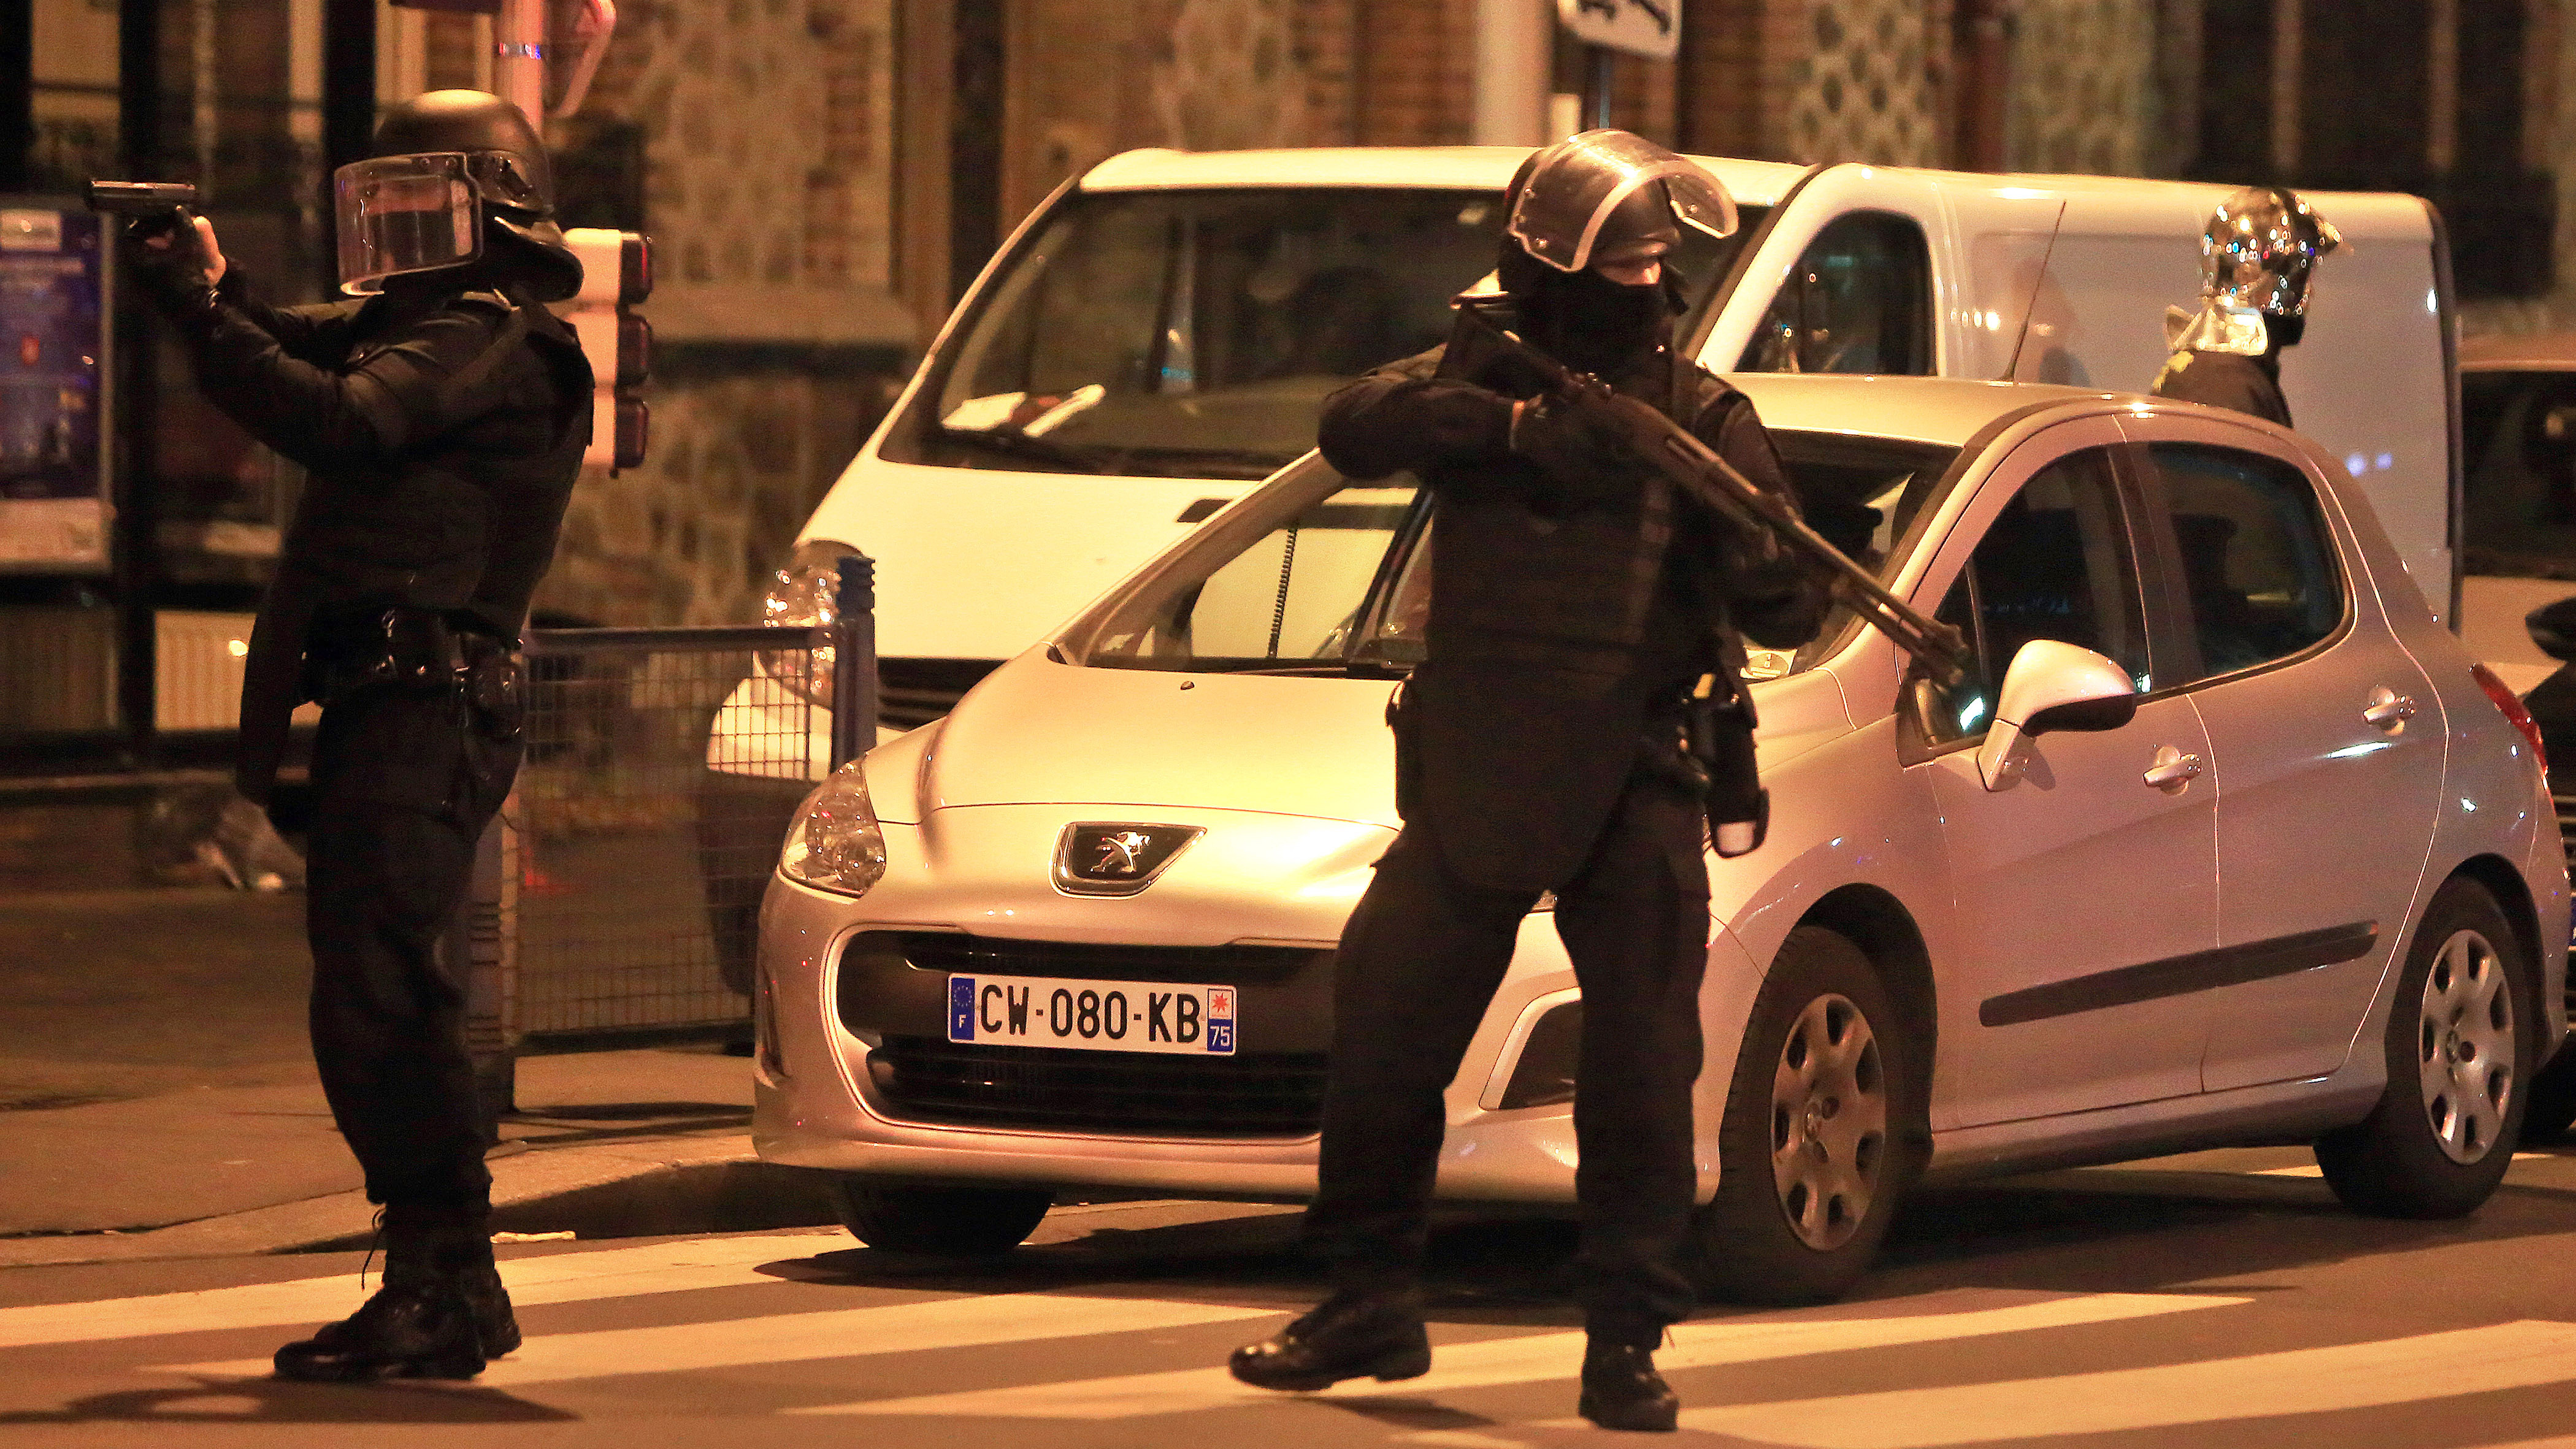 Police officers take up positions in Saint Denis, a northern suburb of Paris, Wednesday, Nov. 18, 2015. Authorities in the Paris suburb of Saint Denis are telling residents to stay inside during a large police operation near France's national stadium that two officials say is linked to last week's deadly attacks.